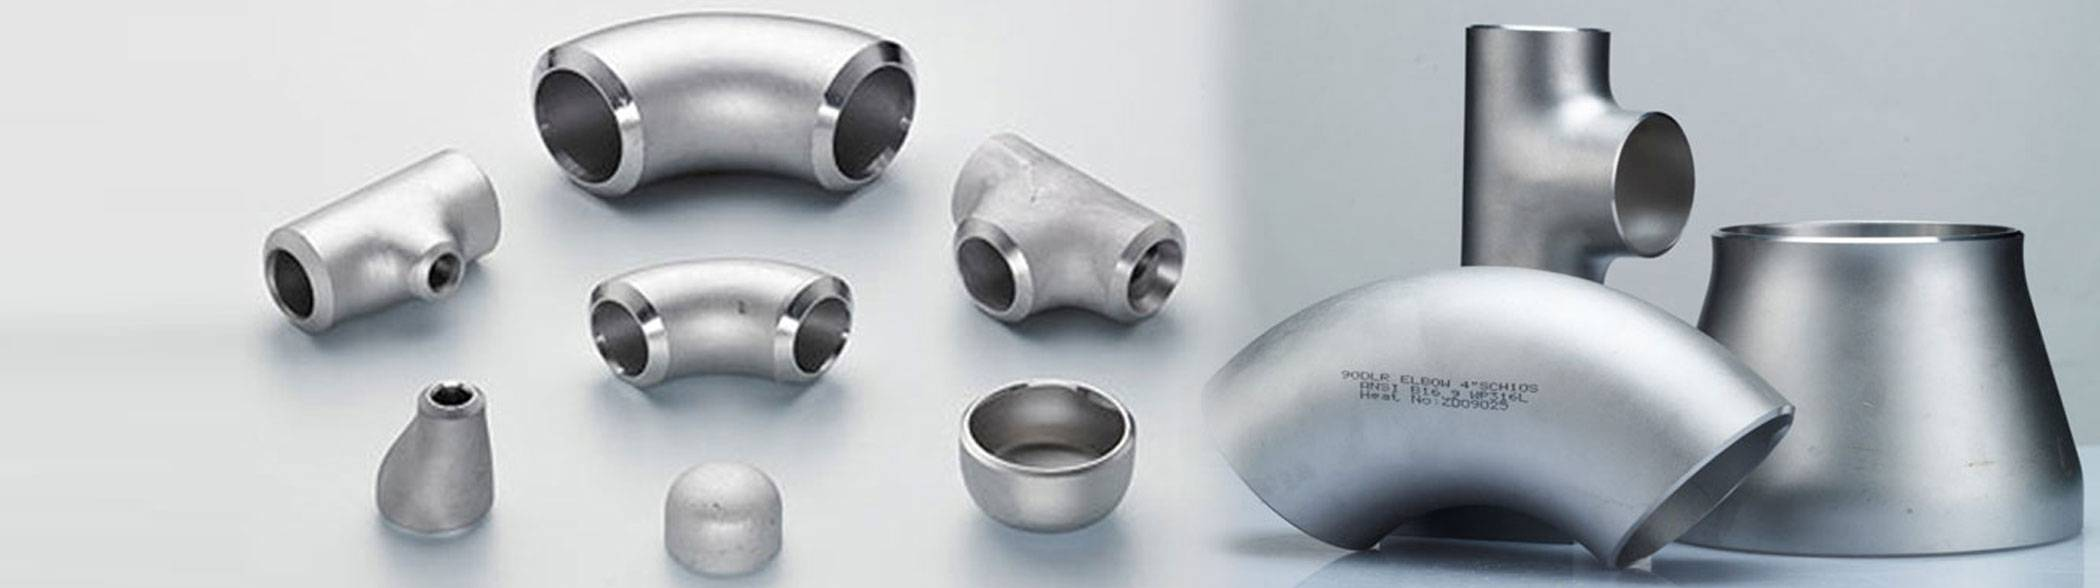 alloy duplex stainless steel pipe fittings